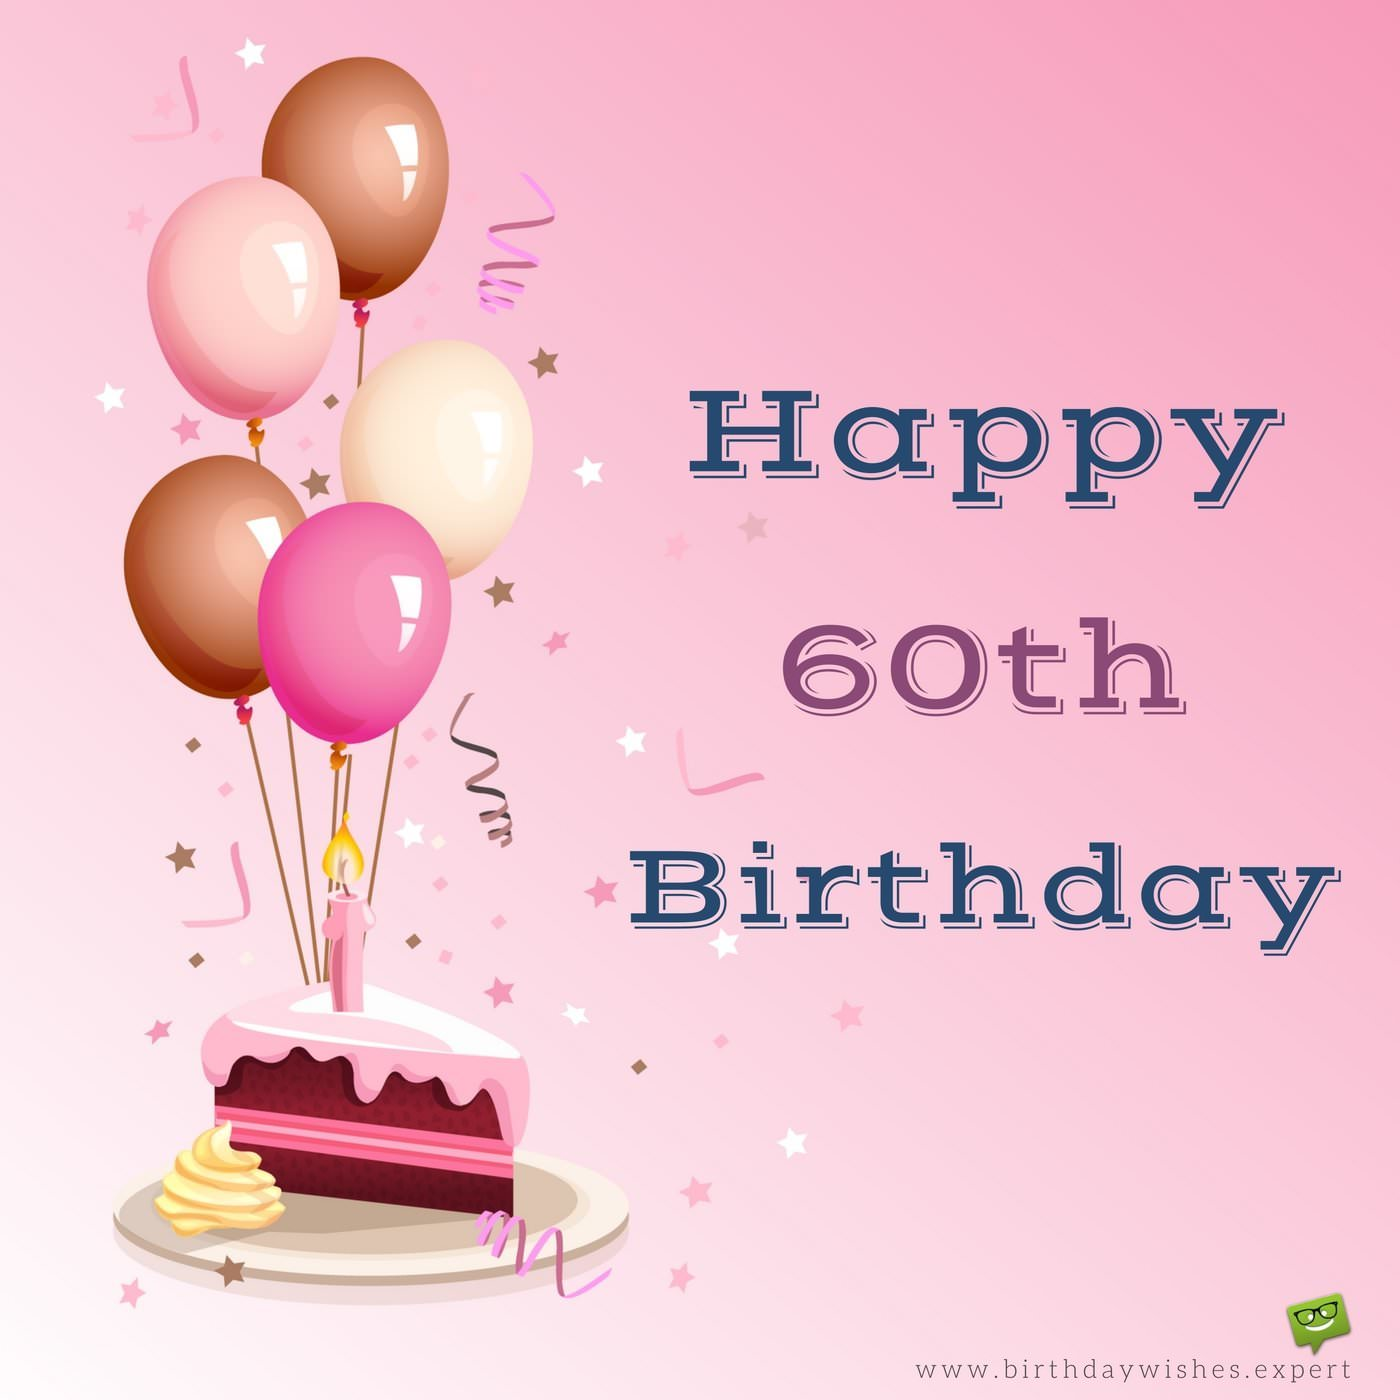 60th birthday wishes ; Happy-60th-Birthday-wish-on-image-with-cake-and-celebration-decoration-elements